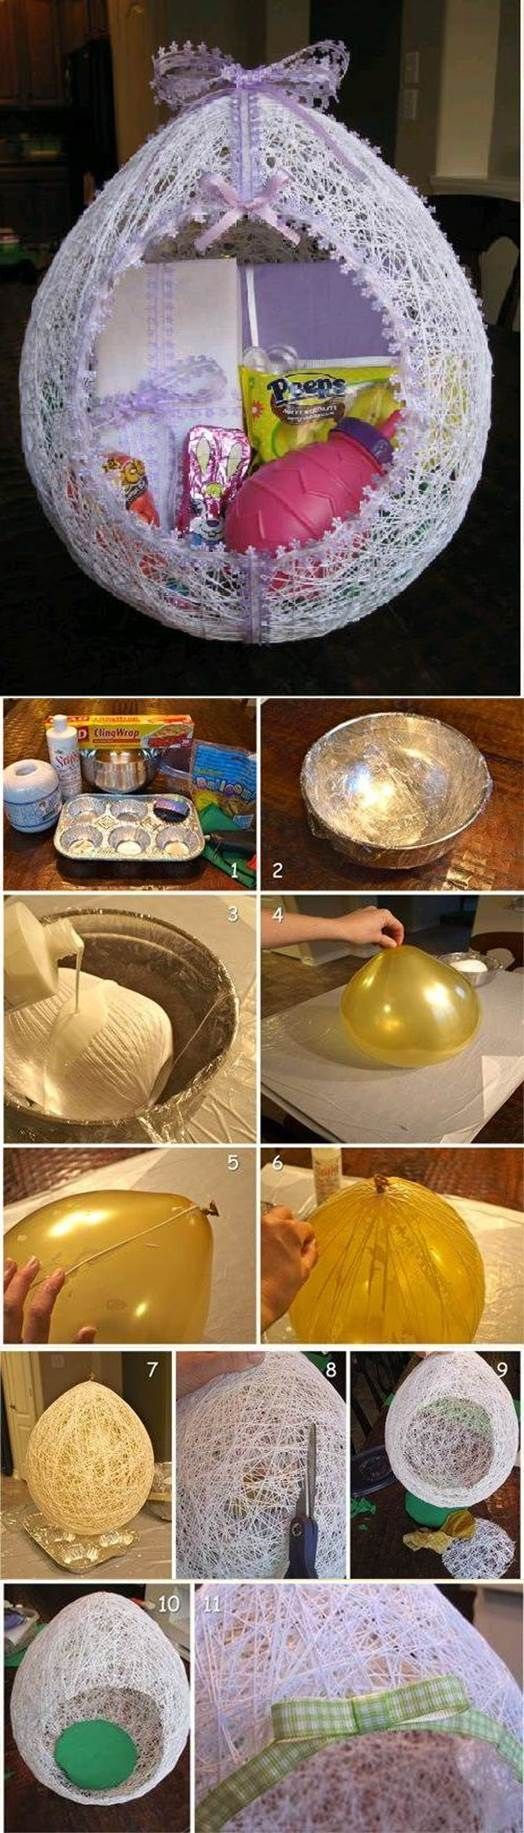 Vajíčko z nití DIY Egg Shaped Easter String Basket | iCreativeIdeas.com LIKE Us on Facebook ==> https://www.facebook.com/icreativeideas